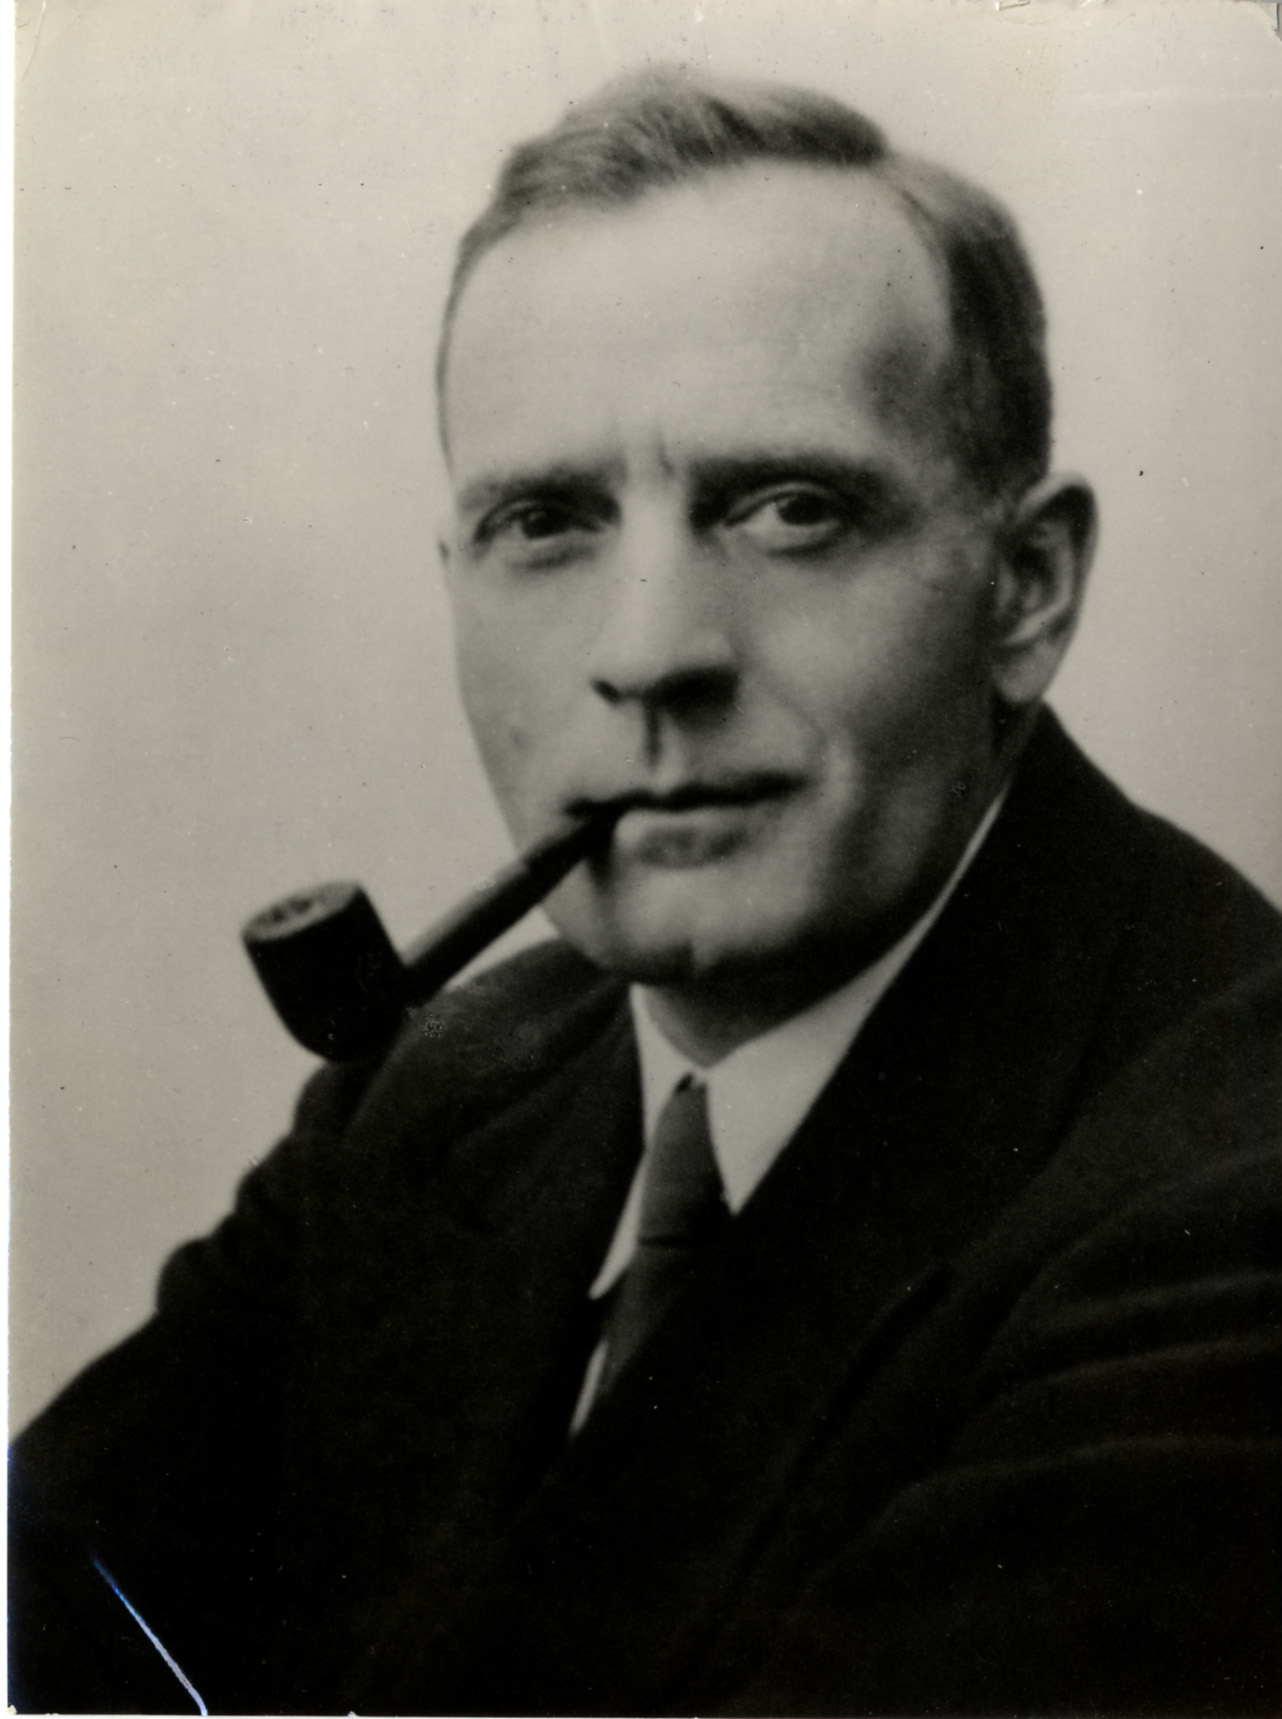 the birth of edwin hubble Edwin powell hubble (november 20, 1889 - september 28, 1953) was an american astronomer, noted for his discovery of galaxies beyond the milky way and the cosmological redshift.